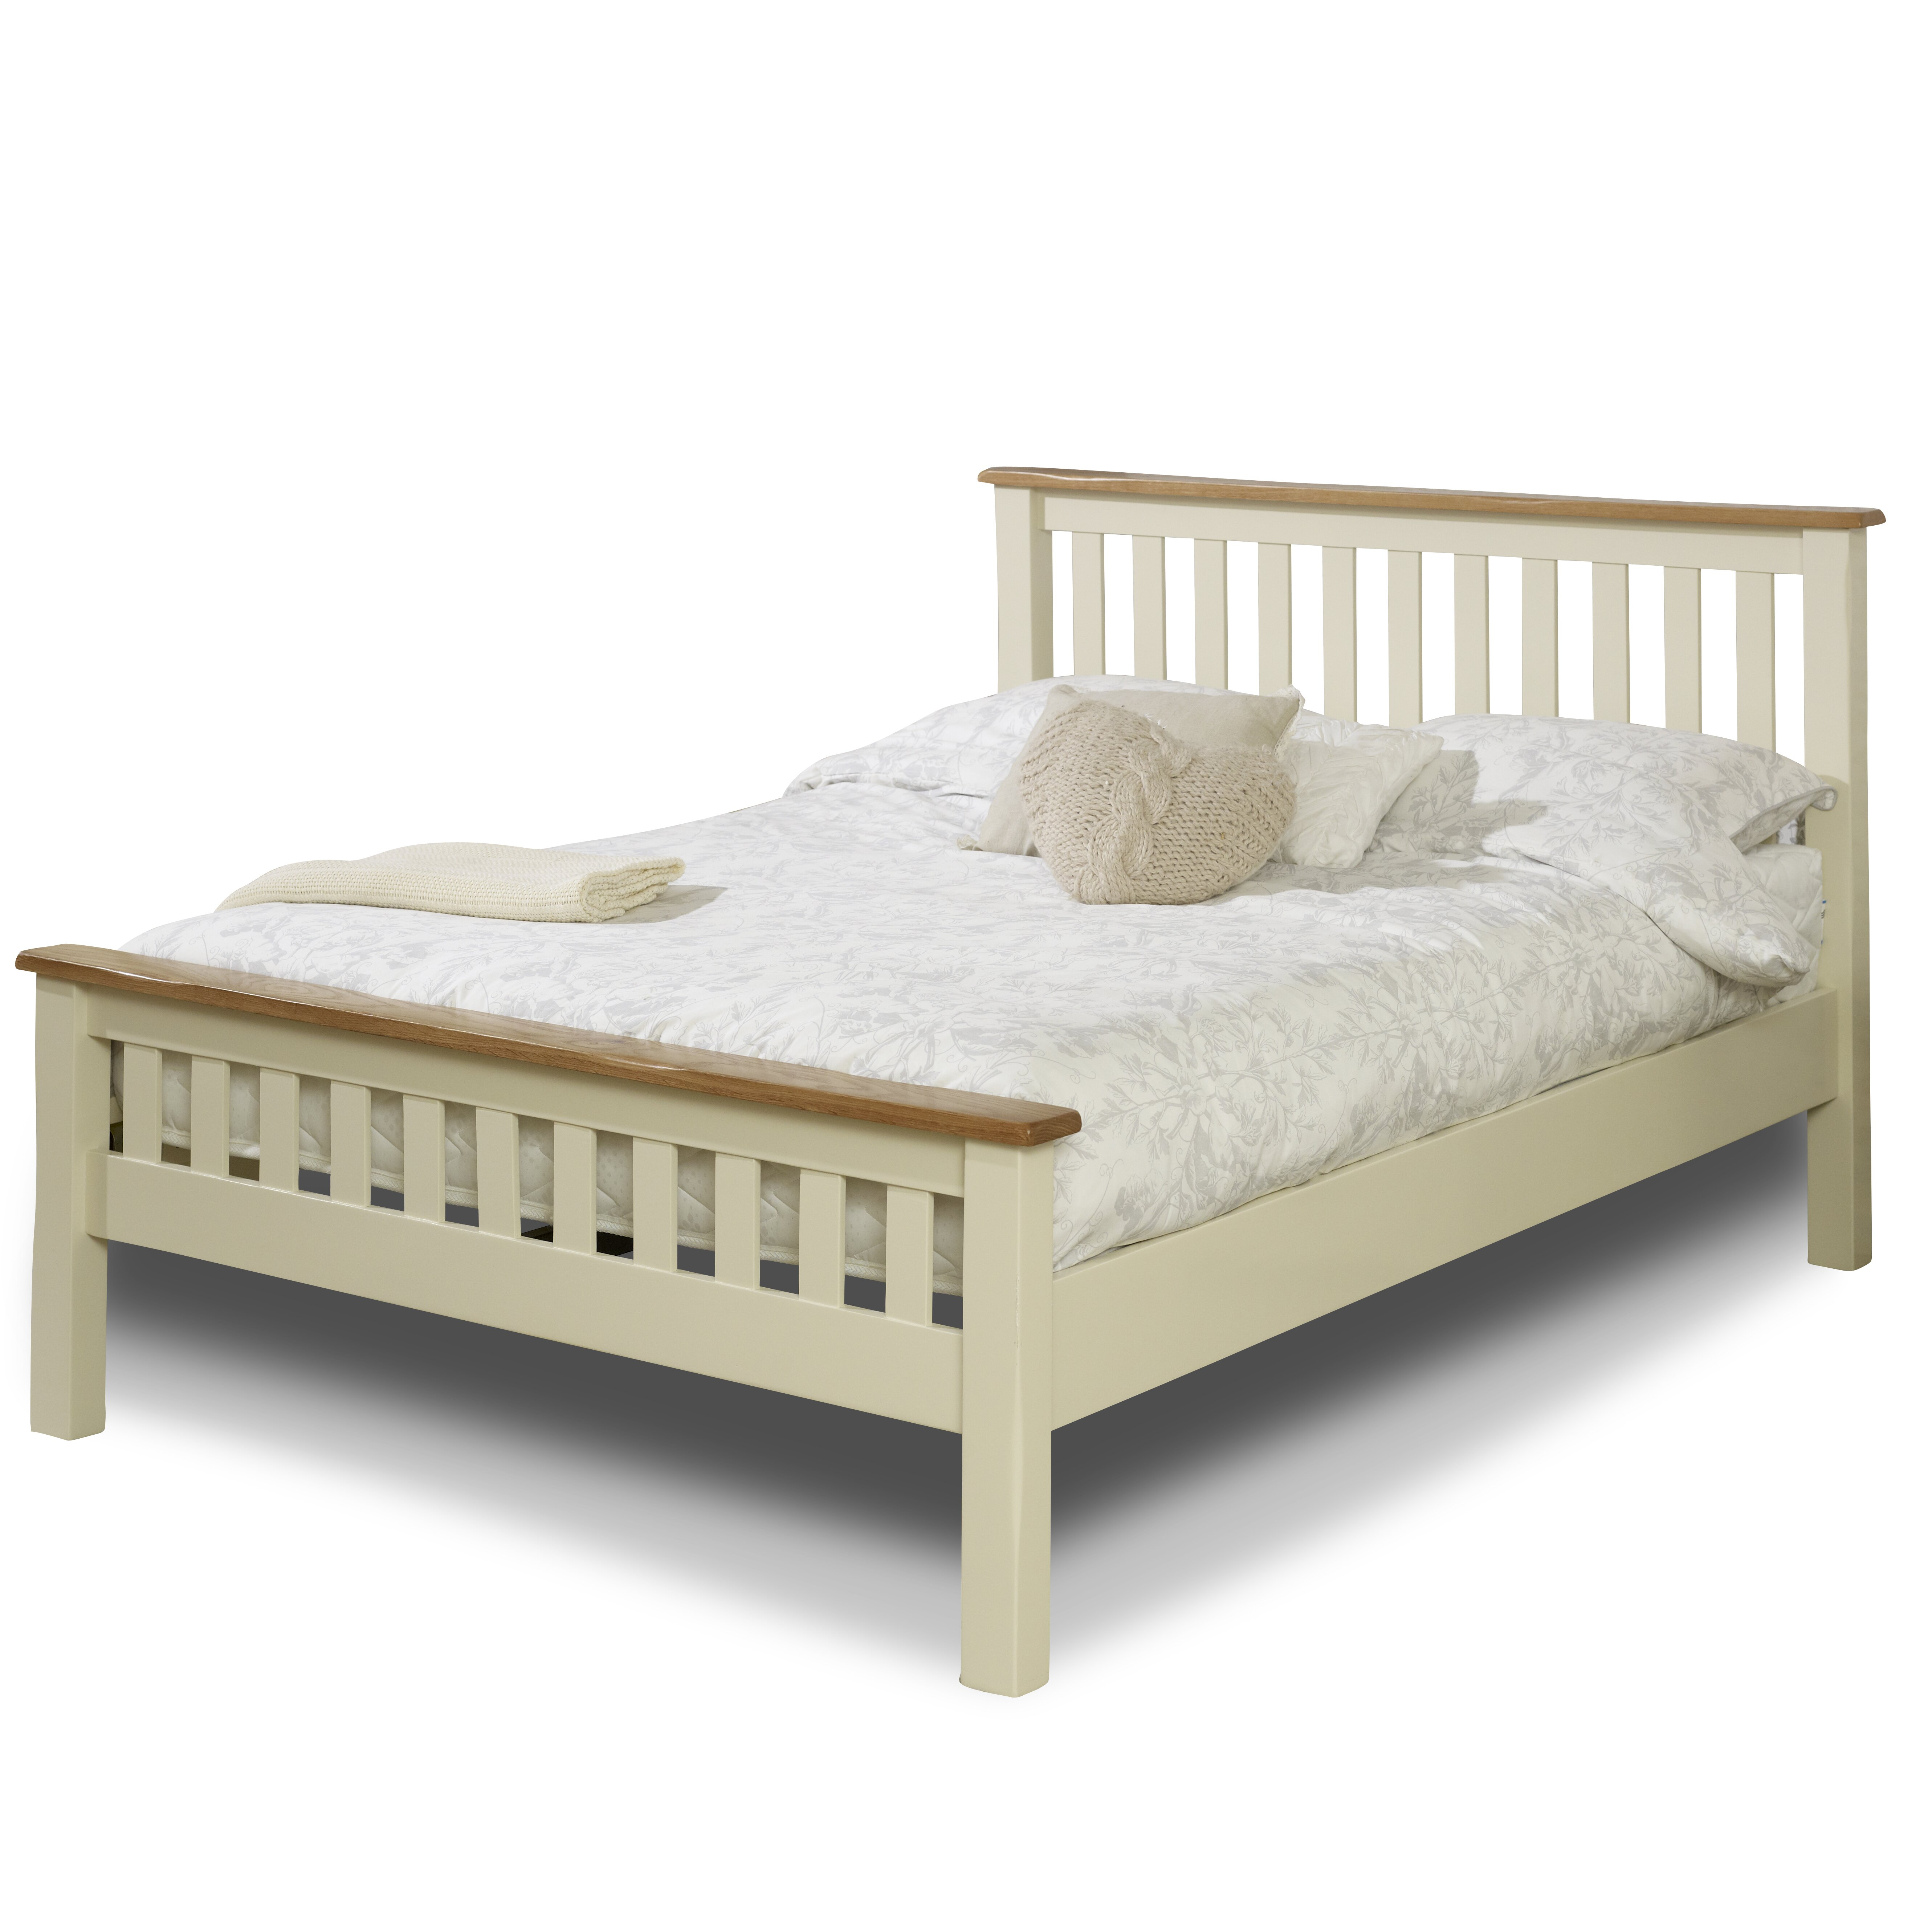 Birlea new hampshire bed frame reviews for New bed pics